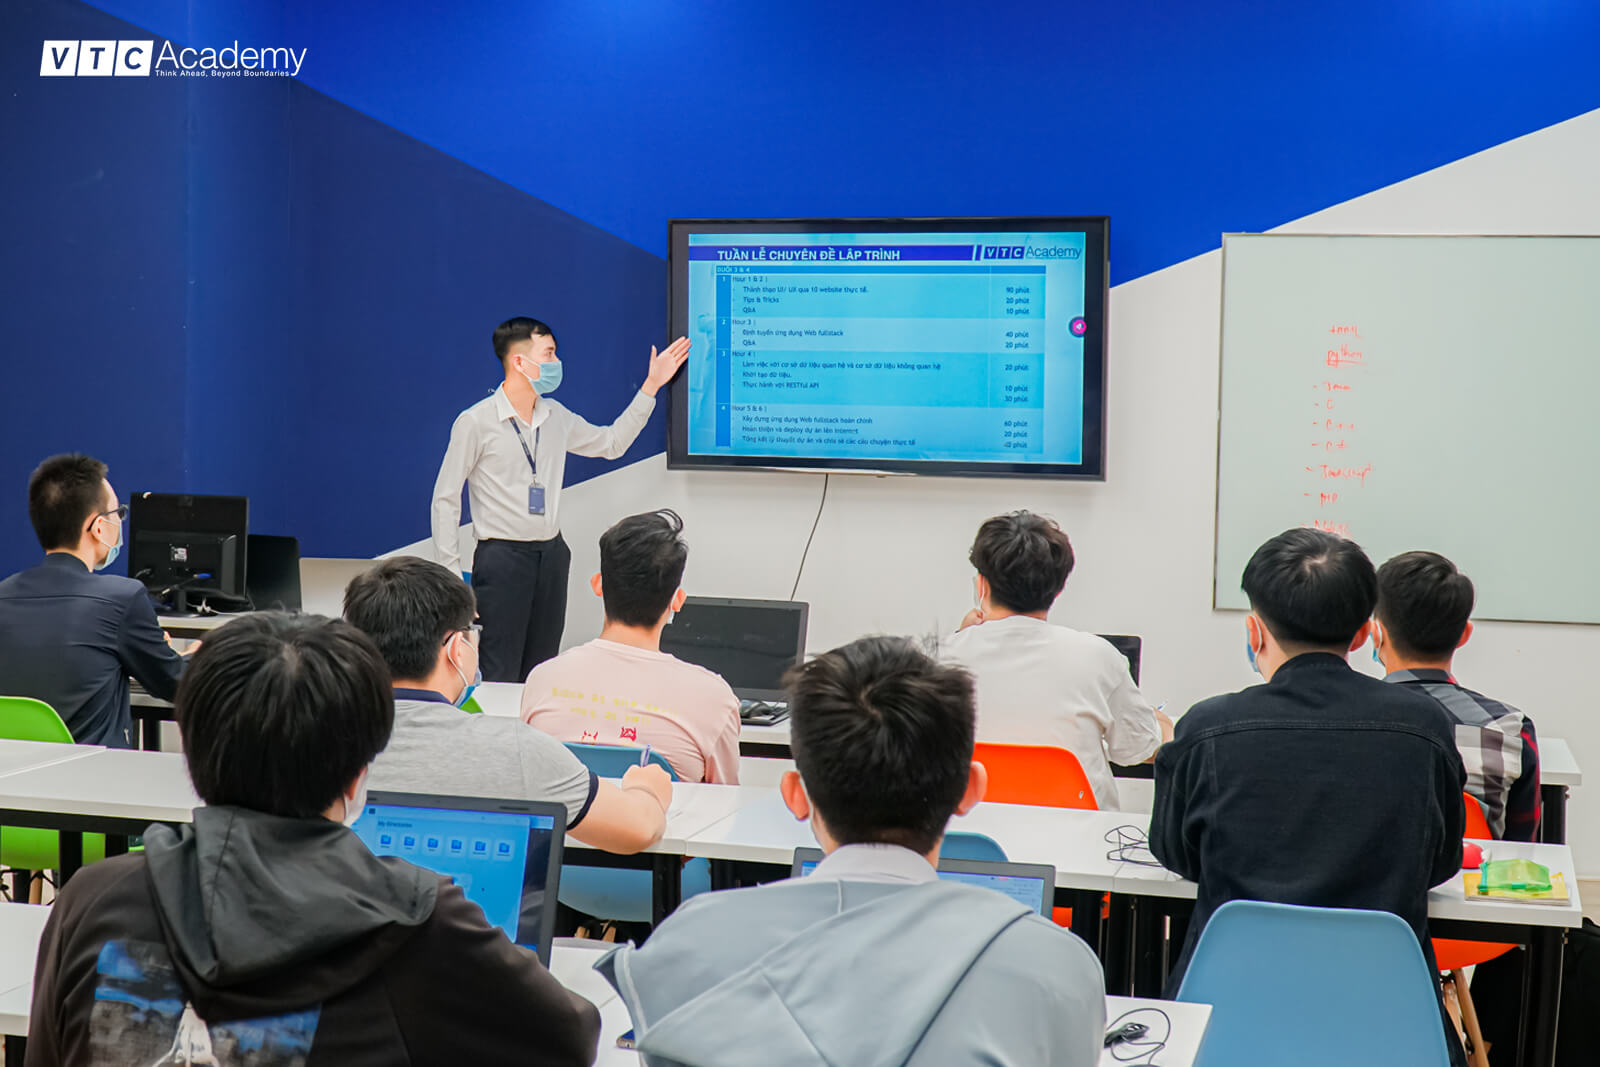 web-full-stack-bootcamp-vtc-academy-5